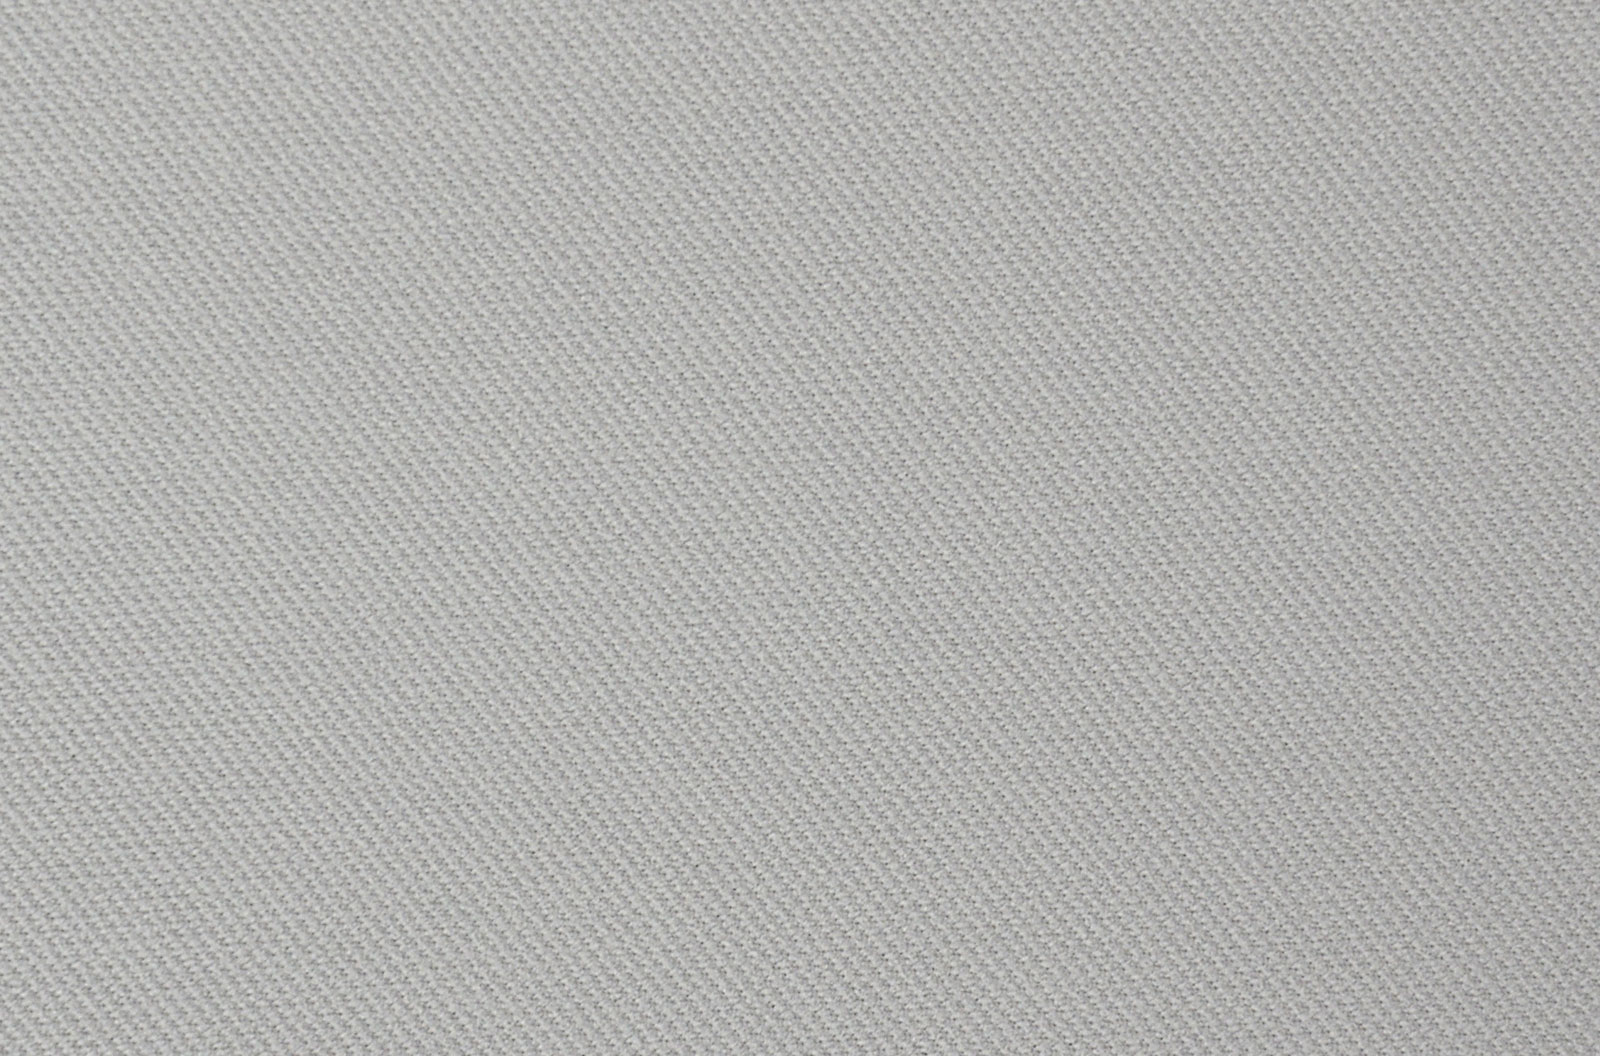 sky material car fabric upholstery fabric upholstery fabric sam344 light grey ebay. Black Bedroom Furniture Sets. Home Design Ideas